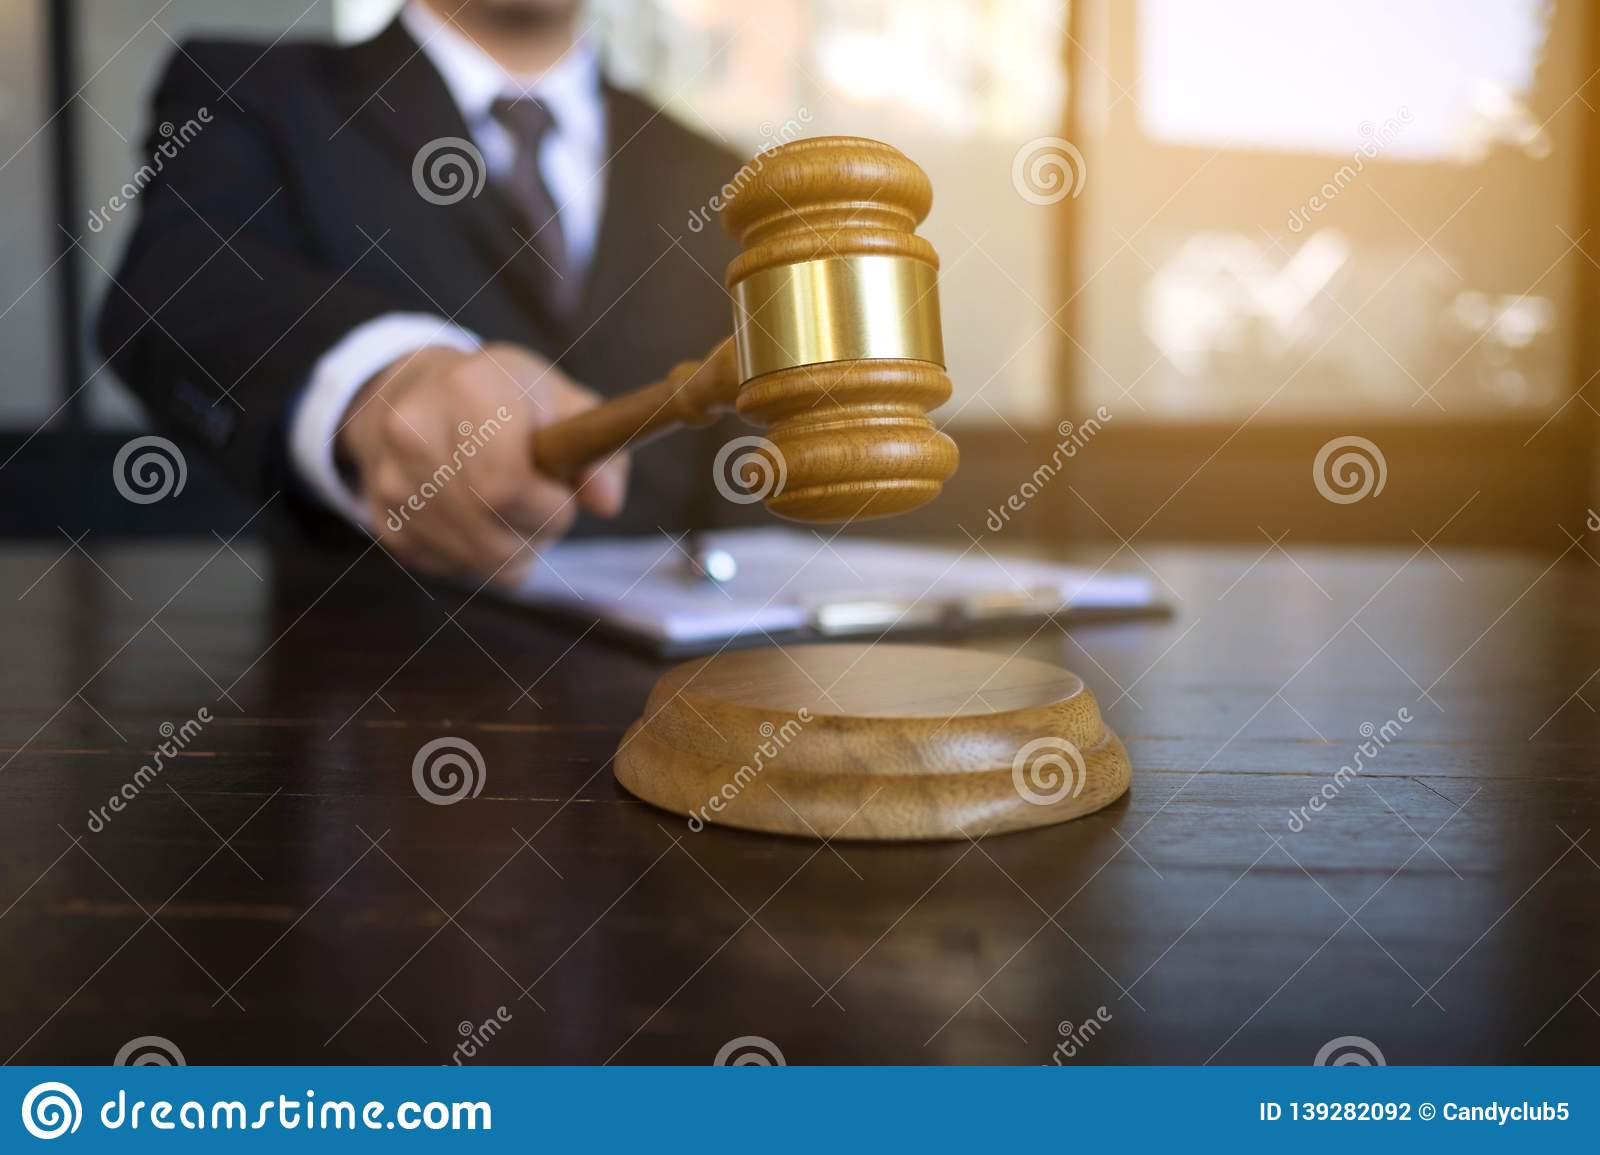 Judge with gavel on table. attorney, court judge,tribunal and justice concept